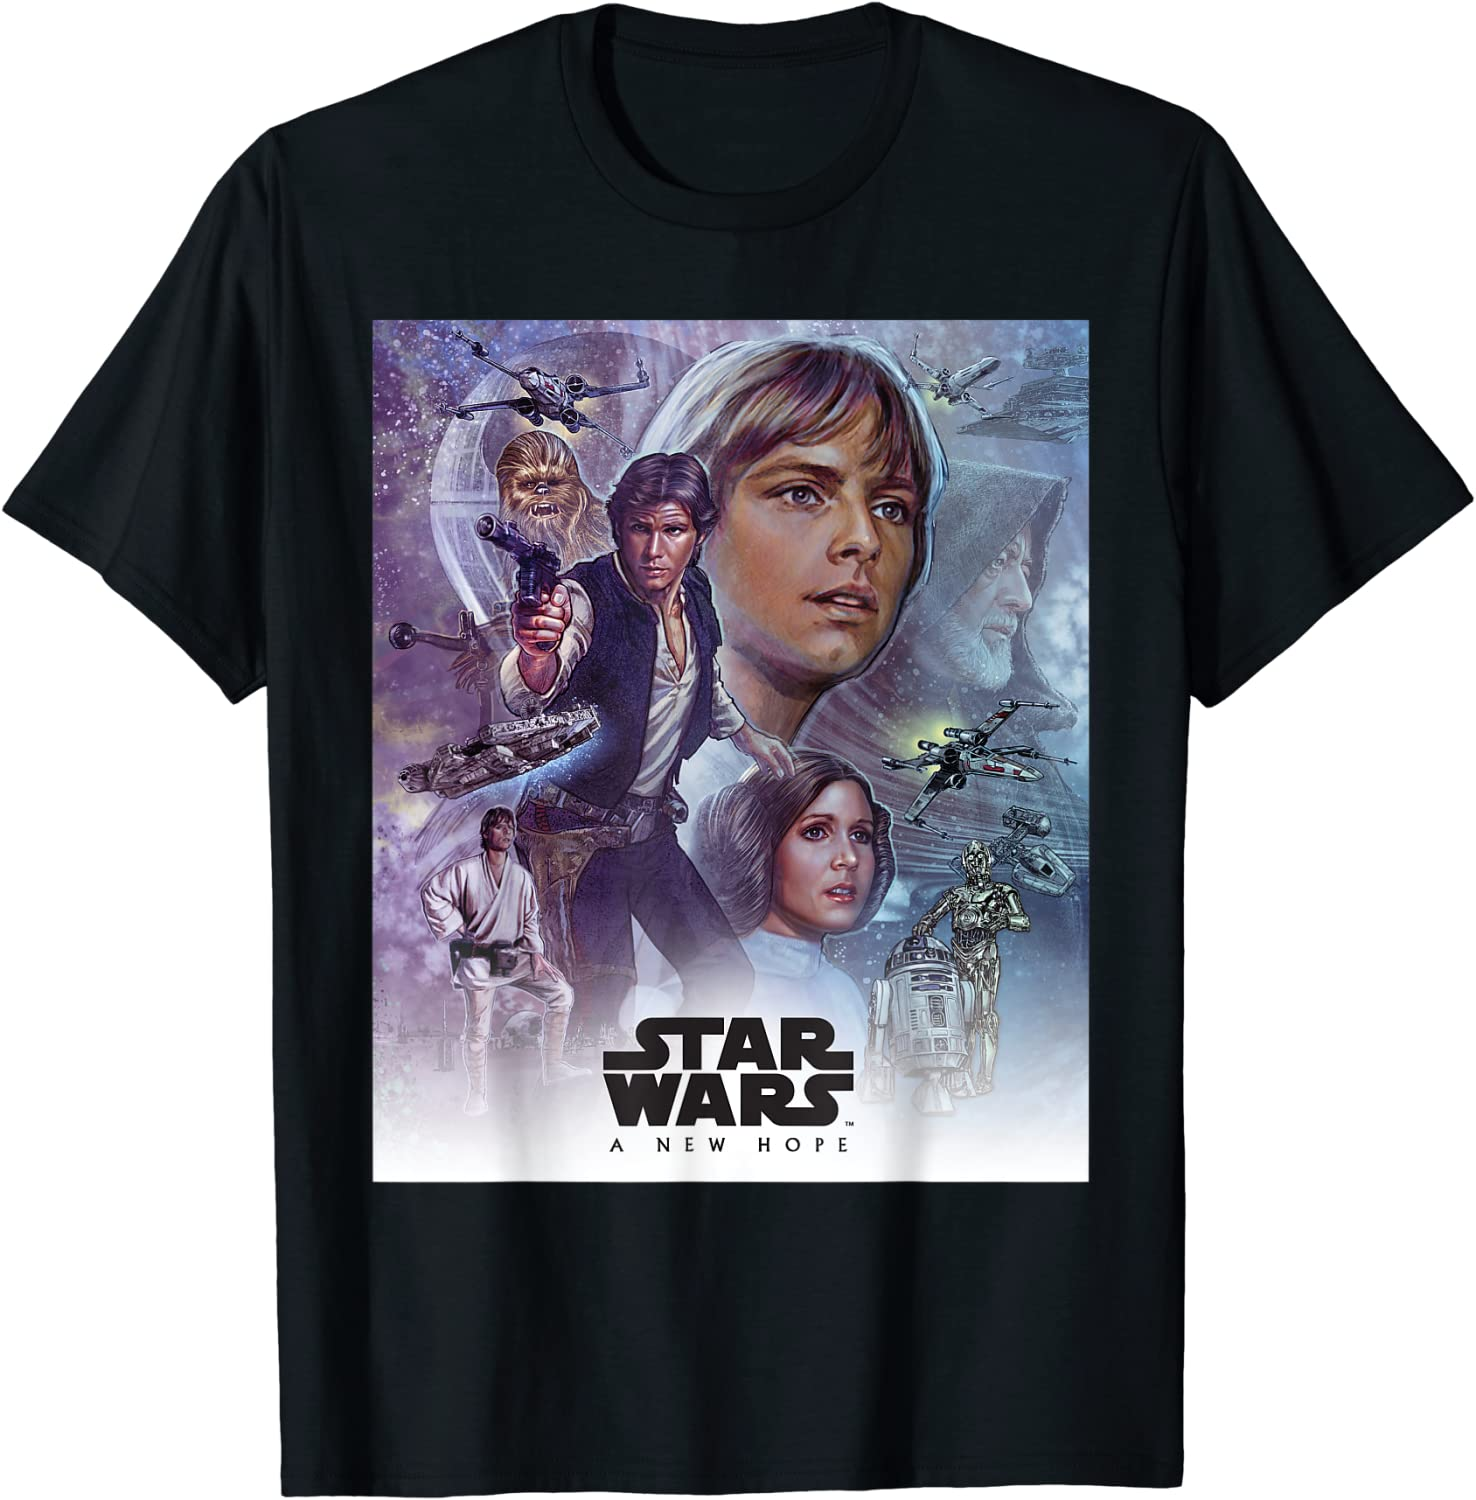 Star Wars Celebration Mural A New Hope Movie Logo T-Shirt